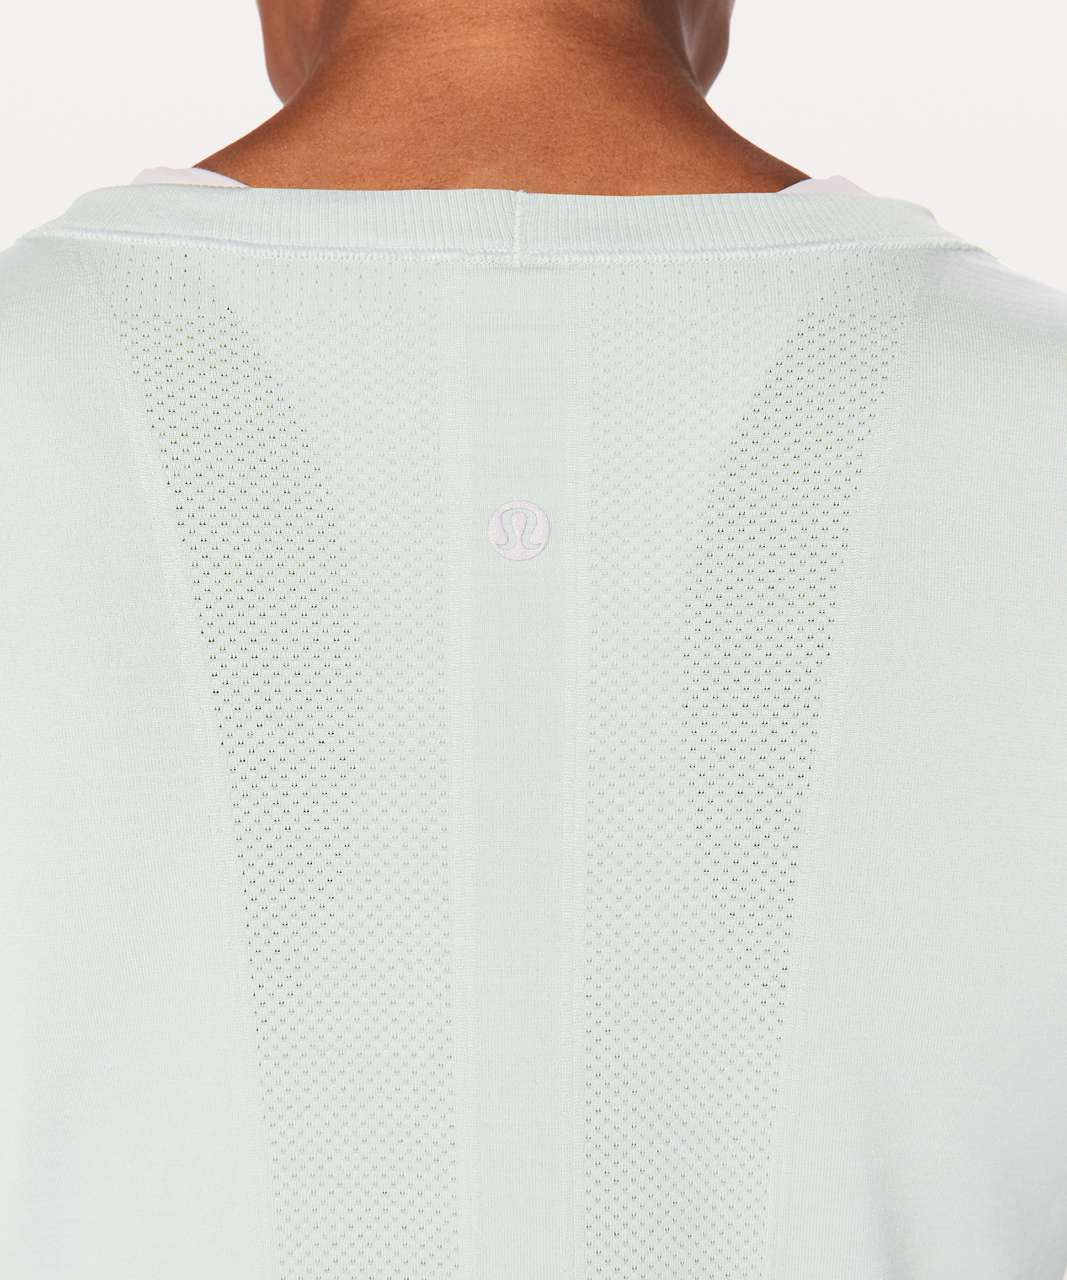 Lululemon Swiftly Tech Long Sleeve (Breeze) Relaxed Fit - Sea Breeze